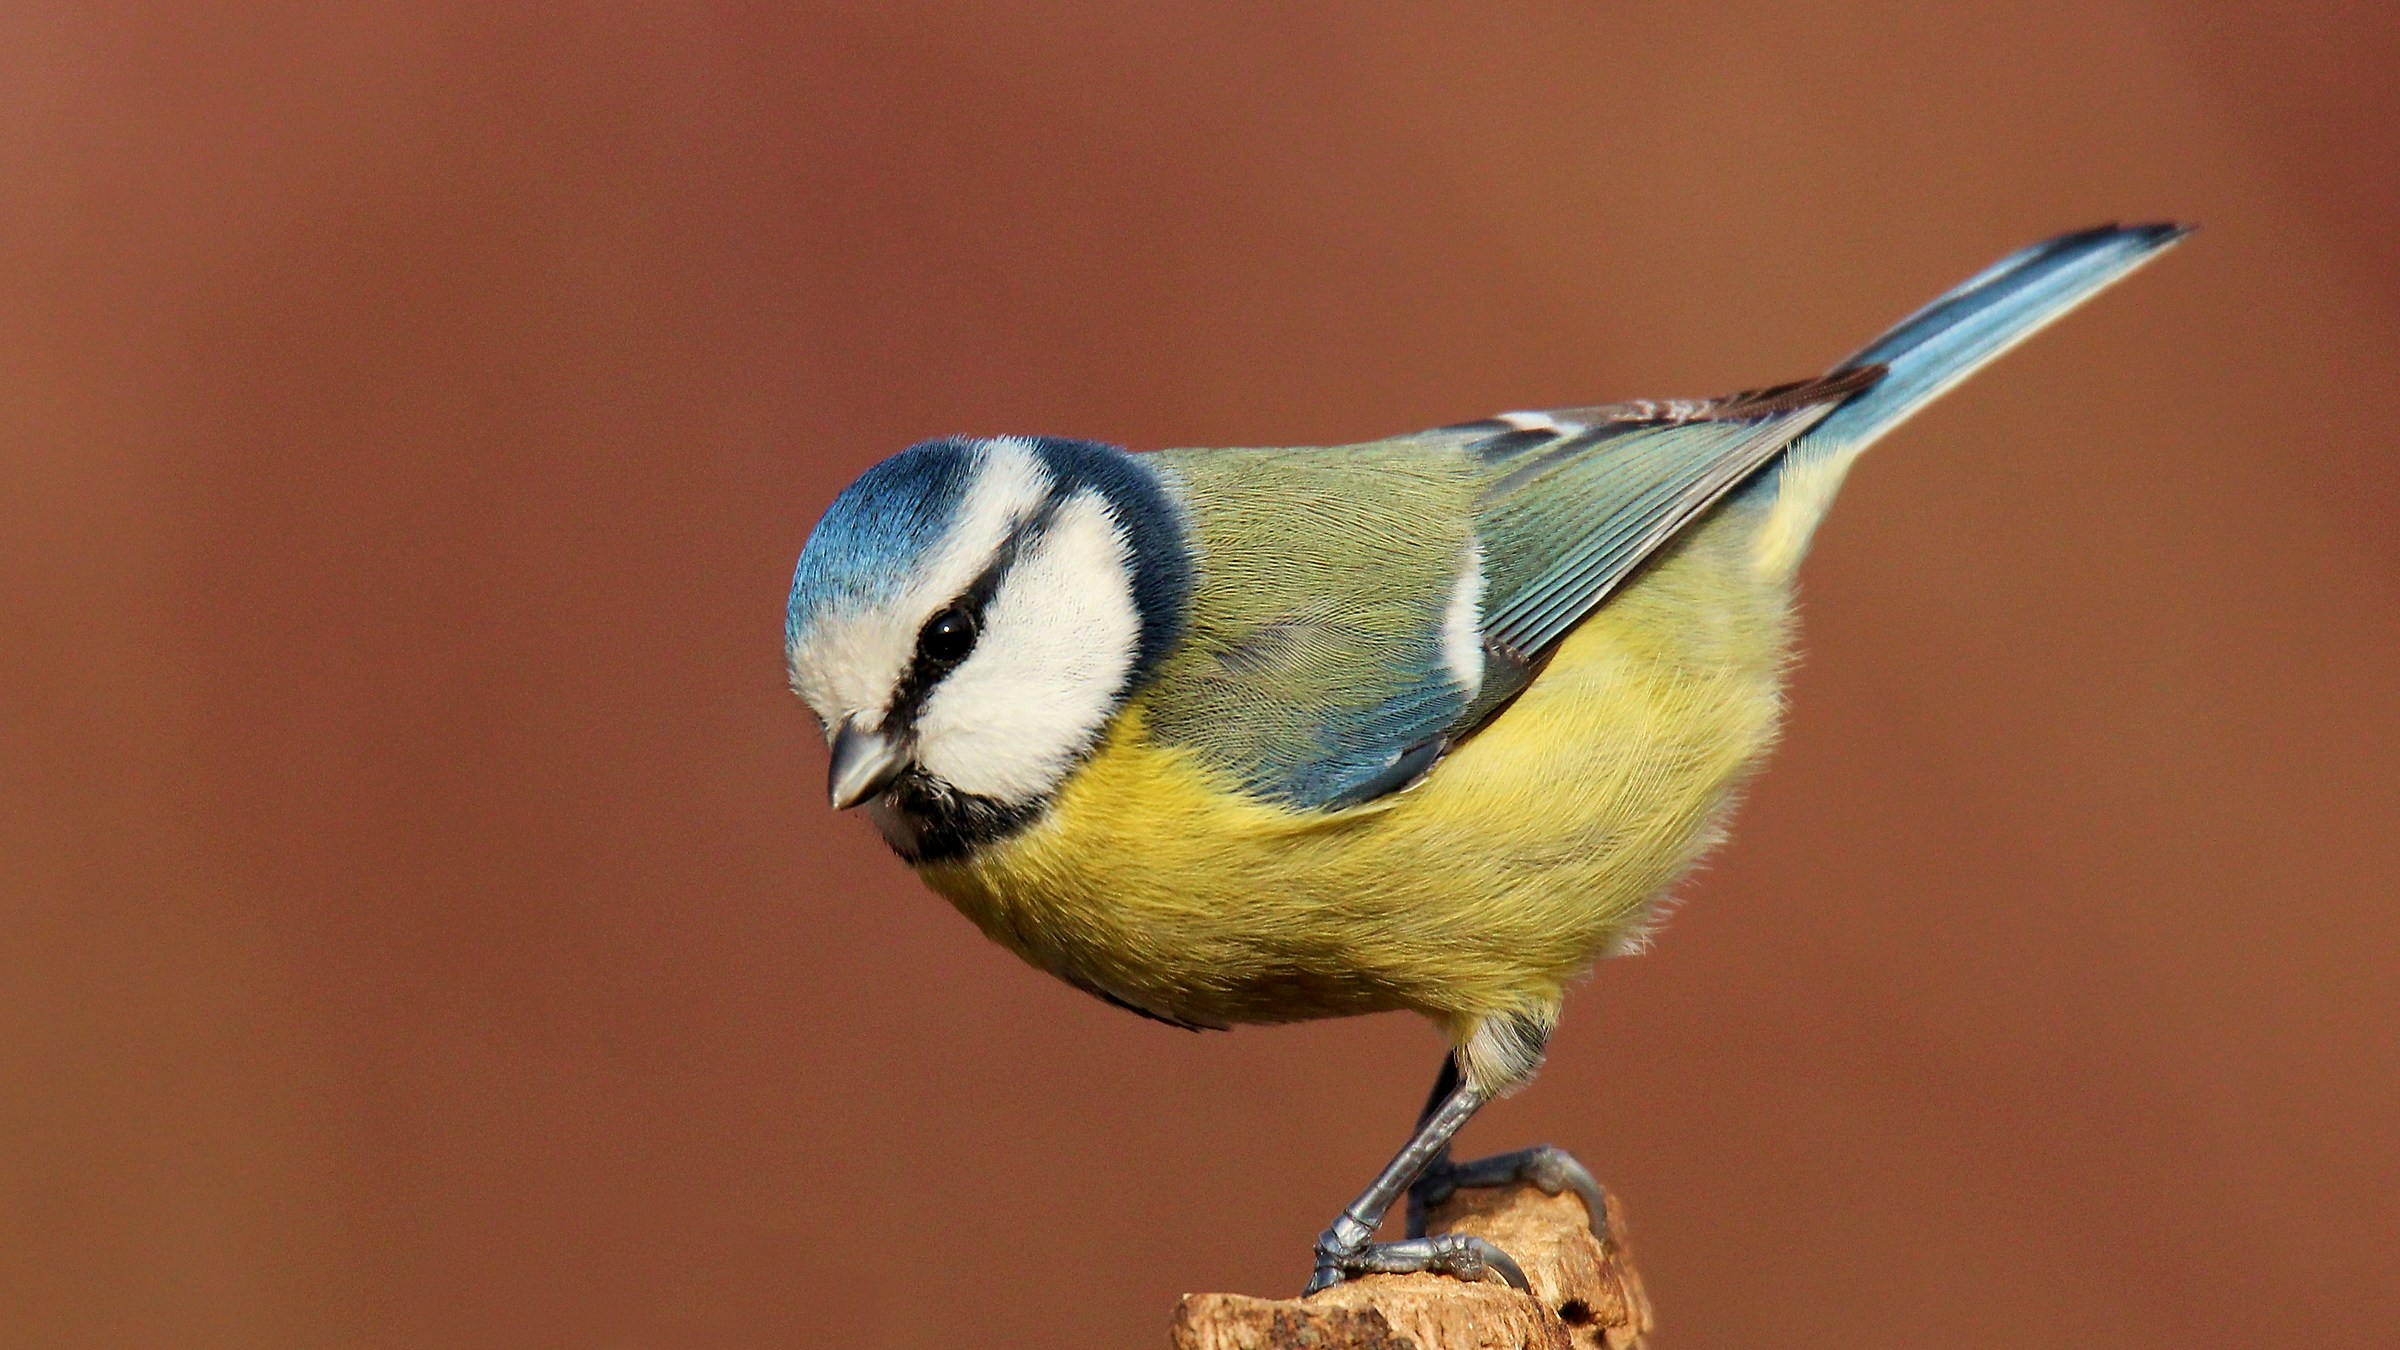 The bow of the Blue Tit...